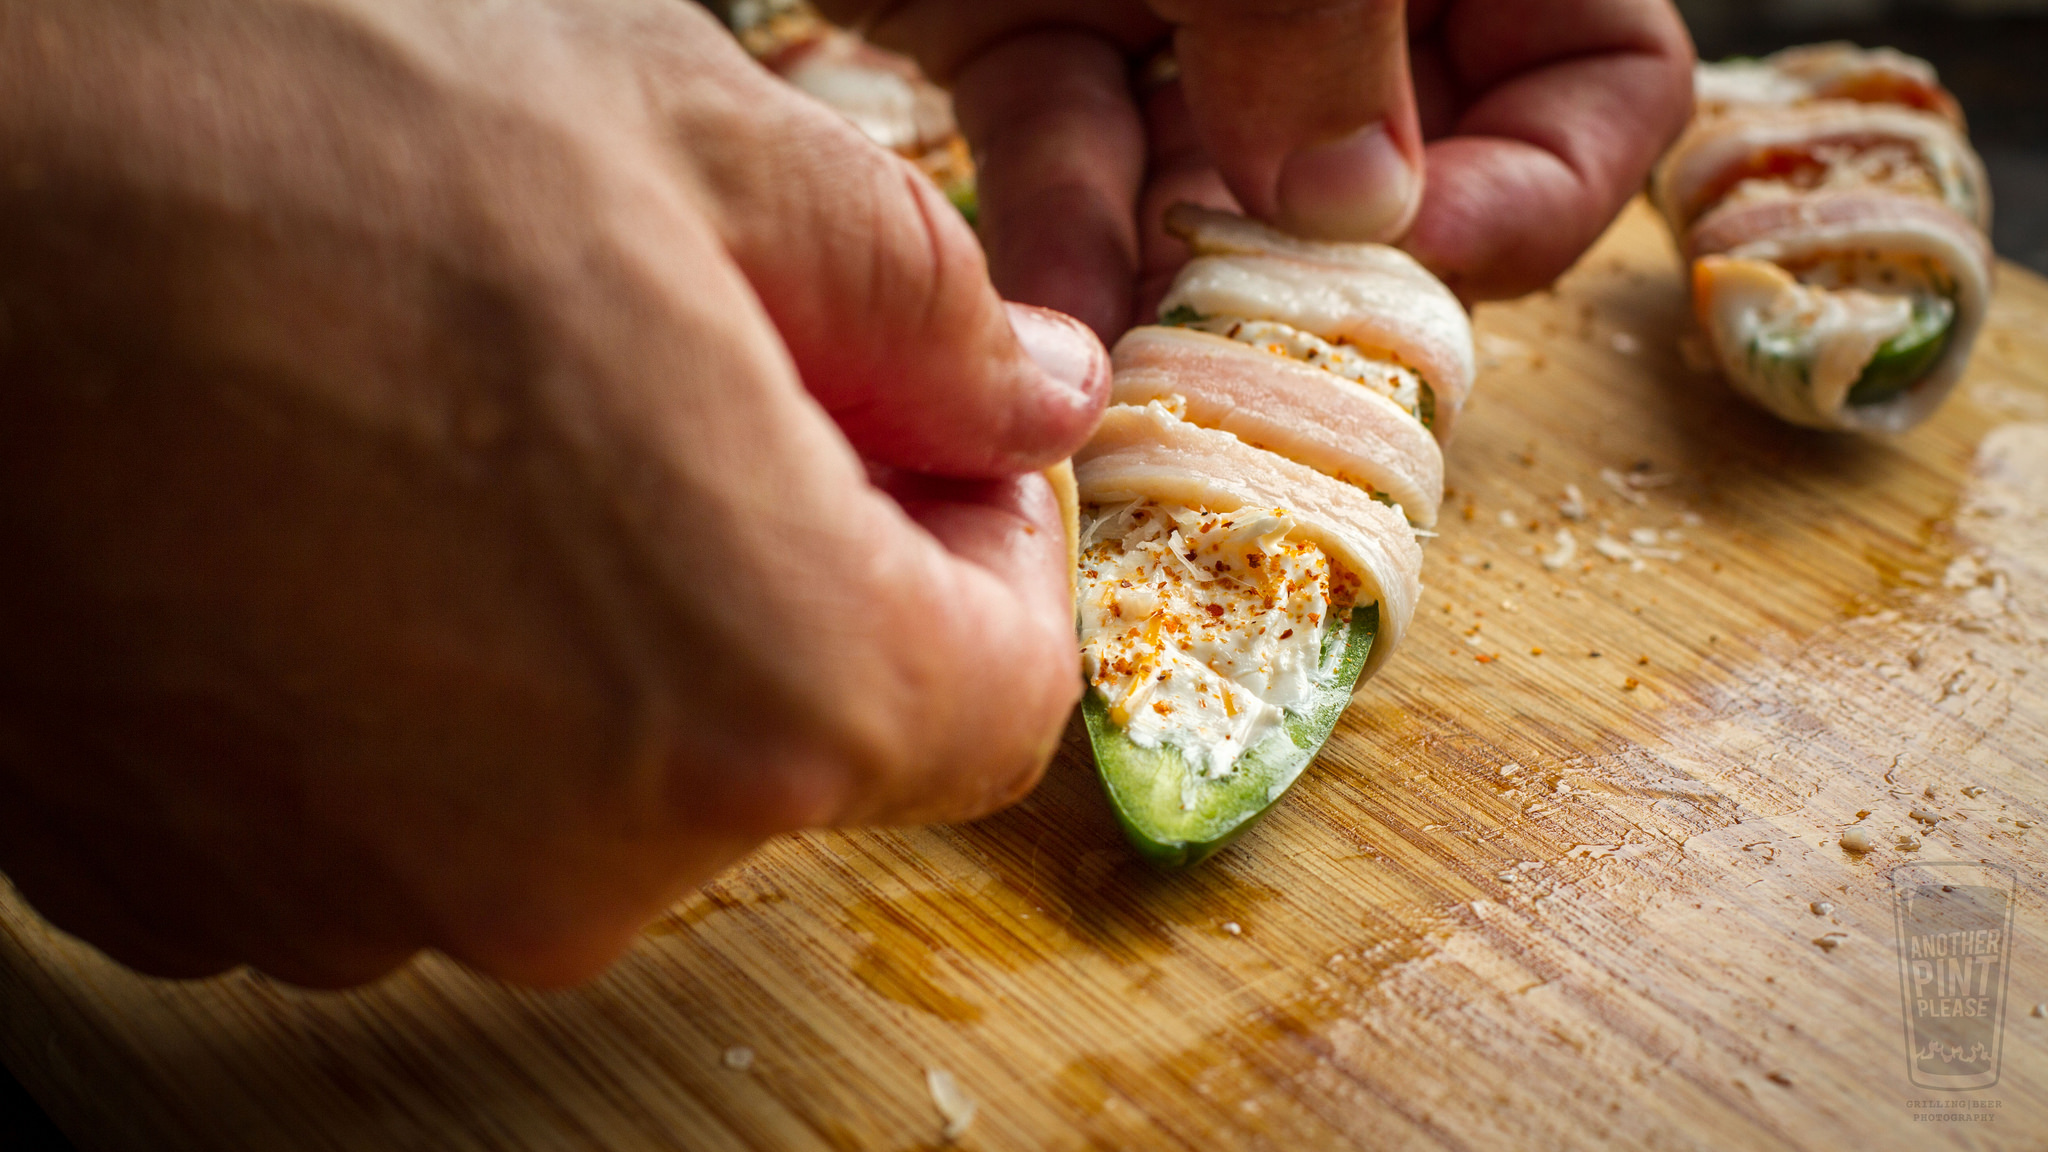 wrapping bacon around jalapeno popper.jpghttps://www.flickr.com/photos/anotherpintplease/28334237580